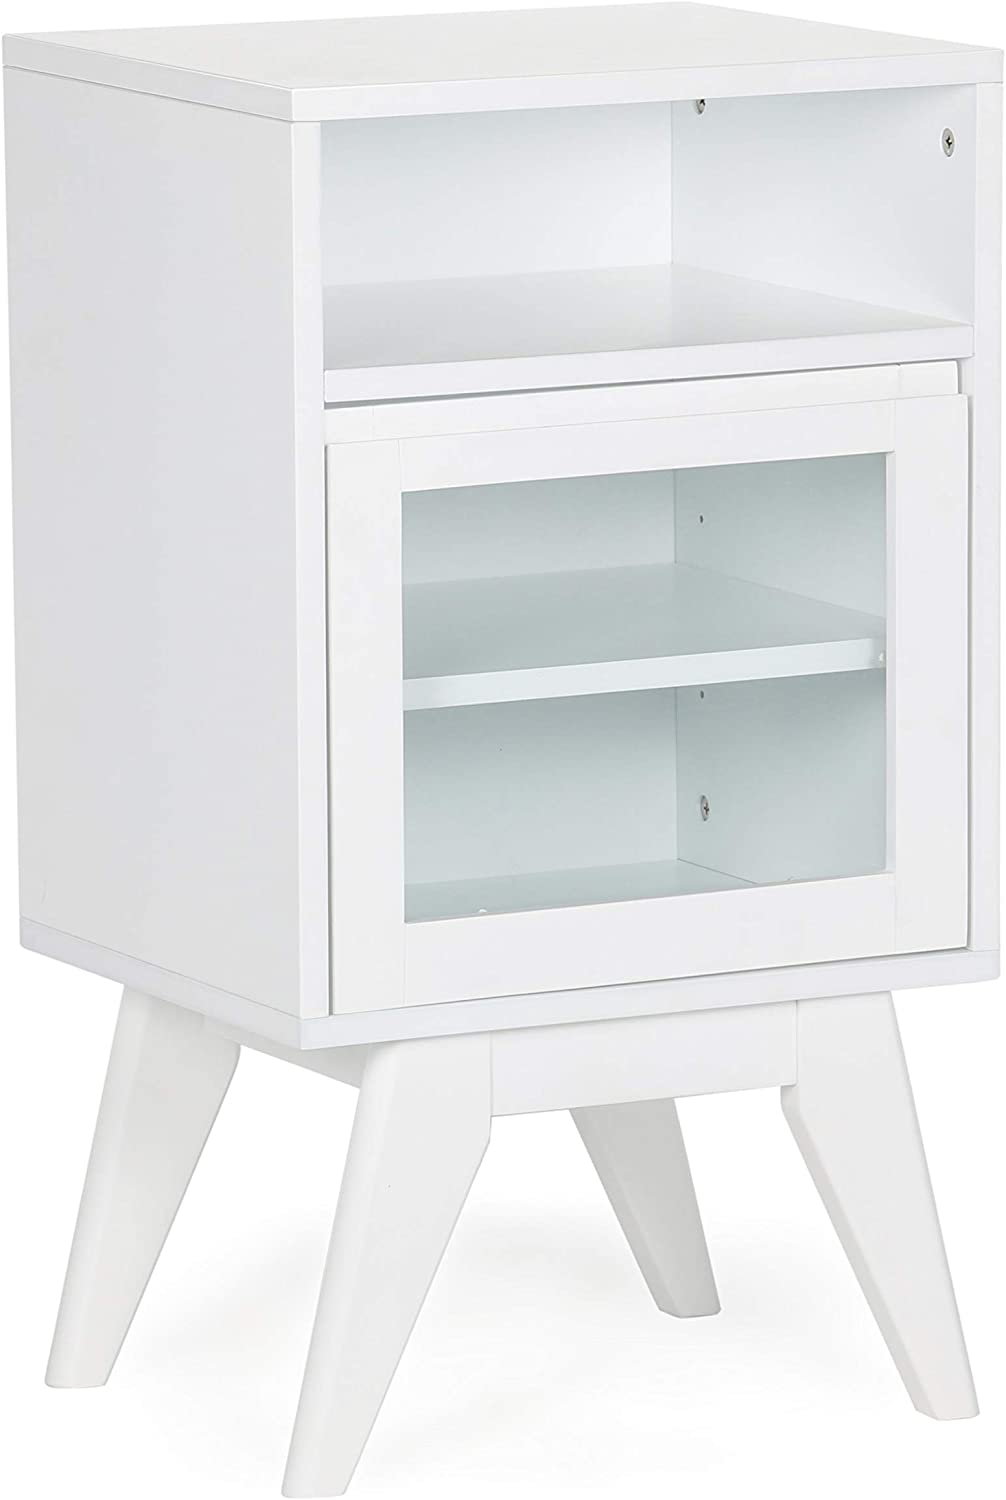 SIMPLIHOME Draper 29.9 inch H x 16.9 inch W Floor Storage Bath Cabinet in Pure White with Storage Compartment and 2 shelves, for the Bathroom, Mid Century Modern